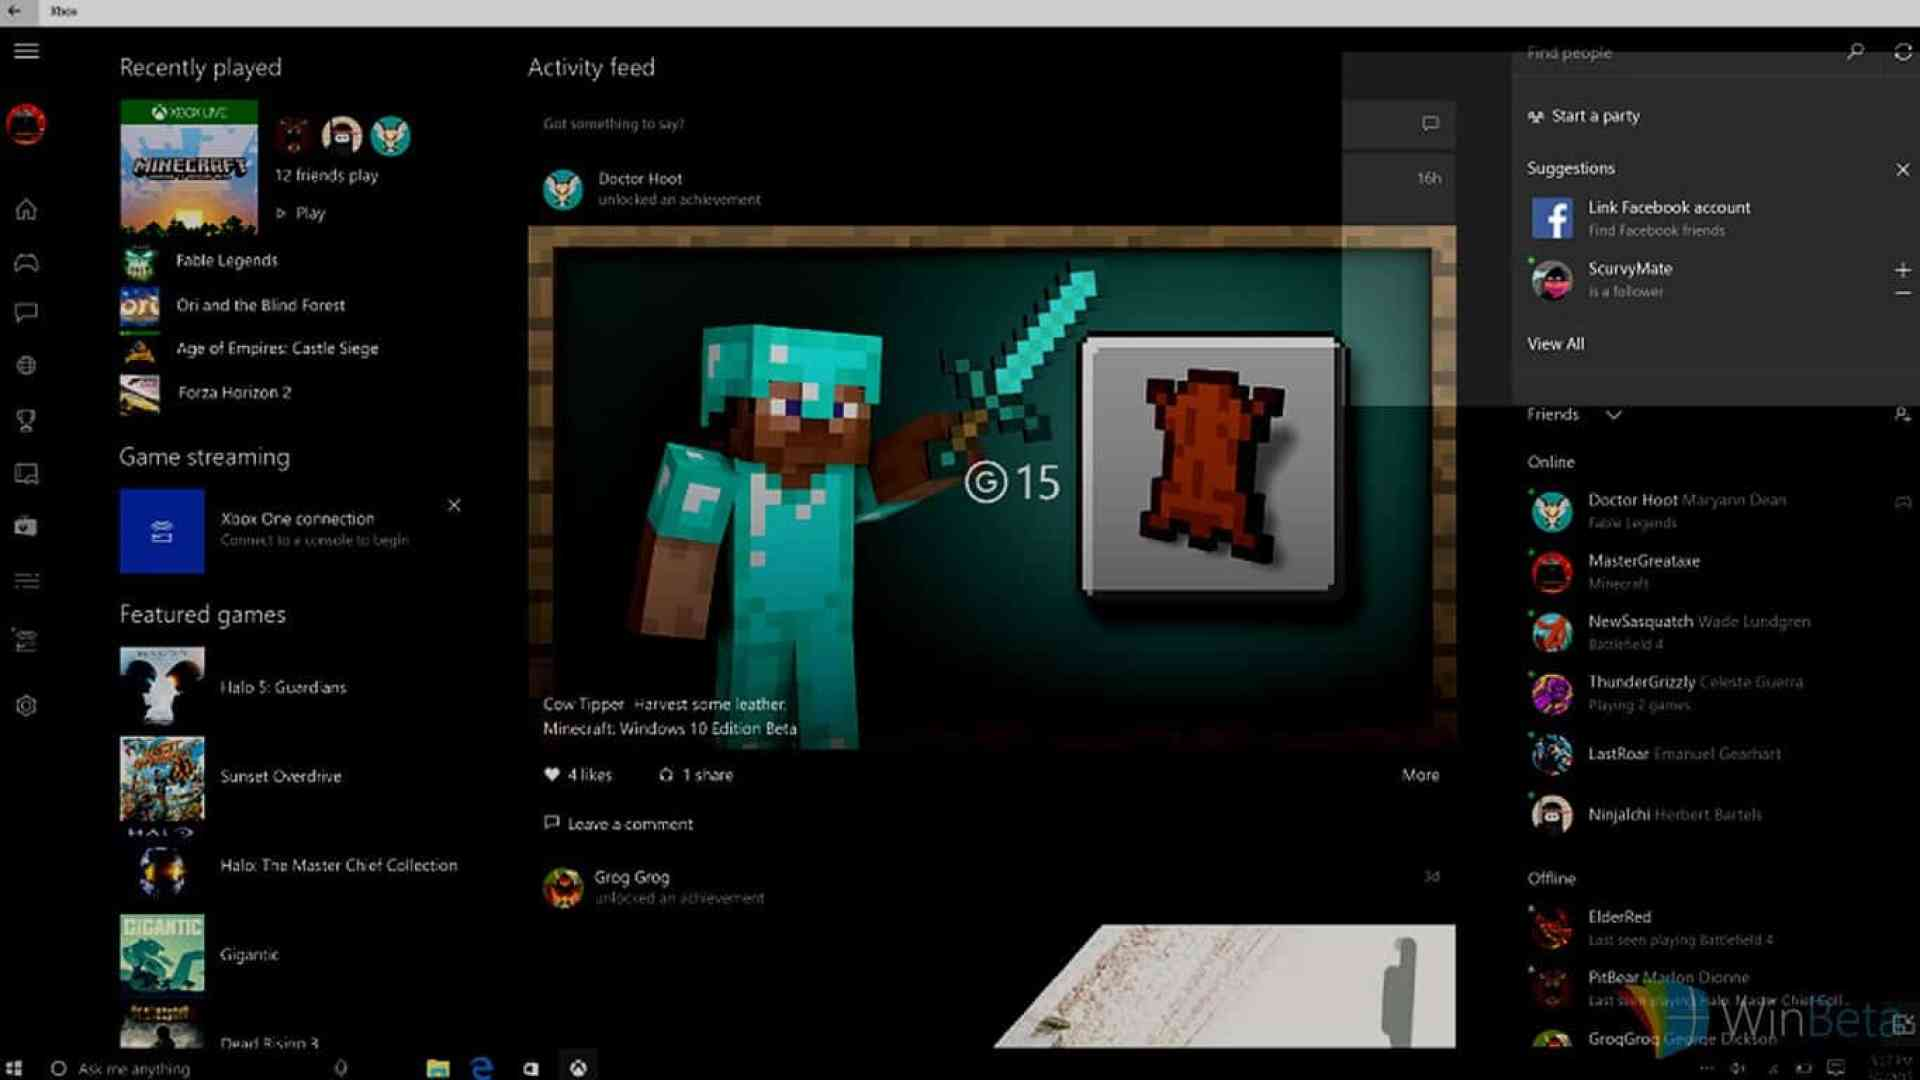 How to connect Facebook to Xbox Live